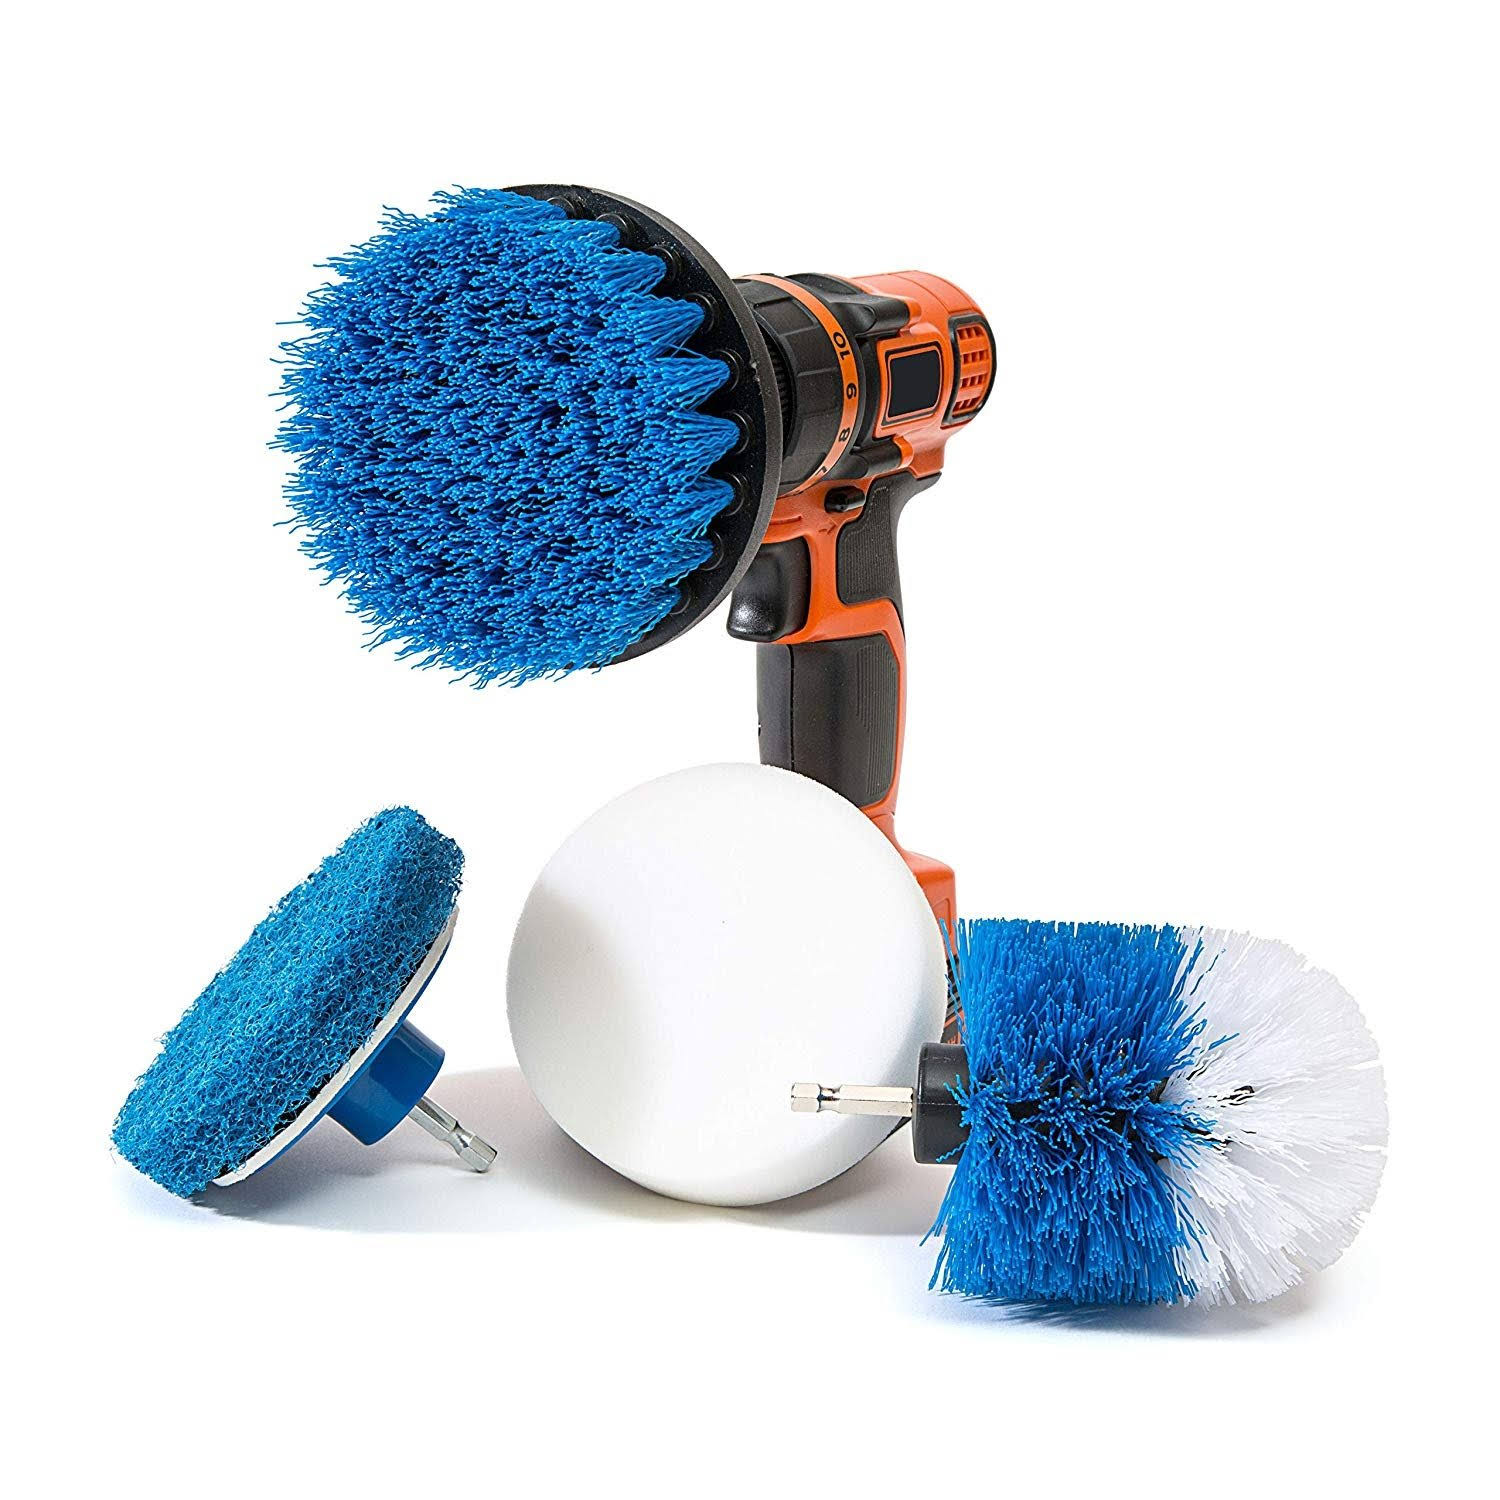 RevoClean Household Cleaning Brush - Blue, Set of 4